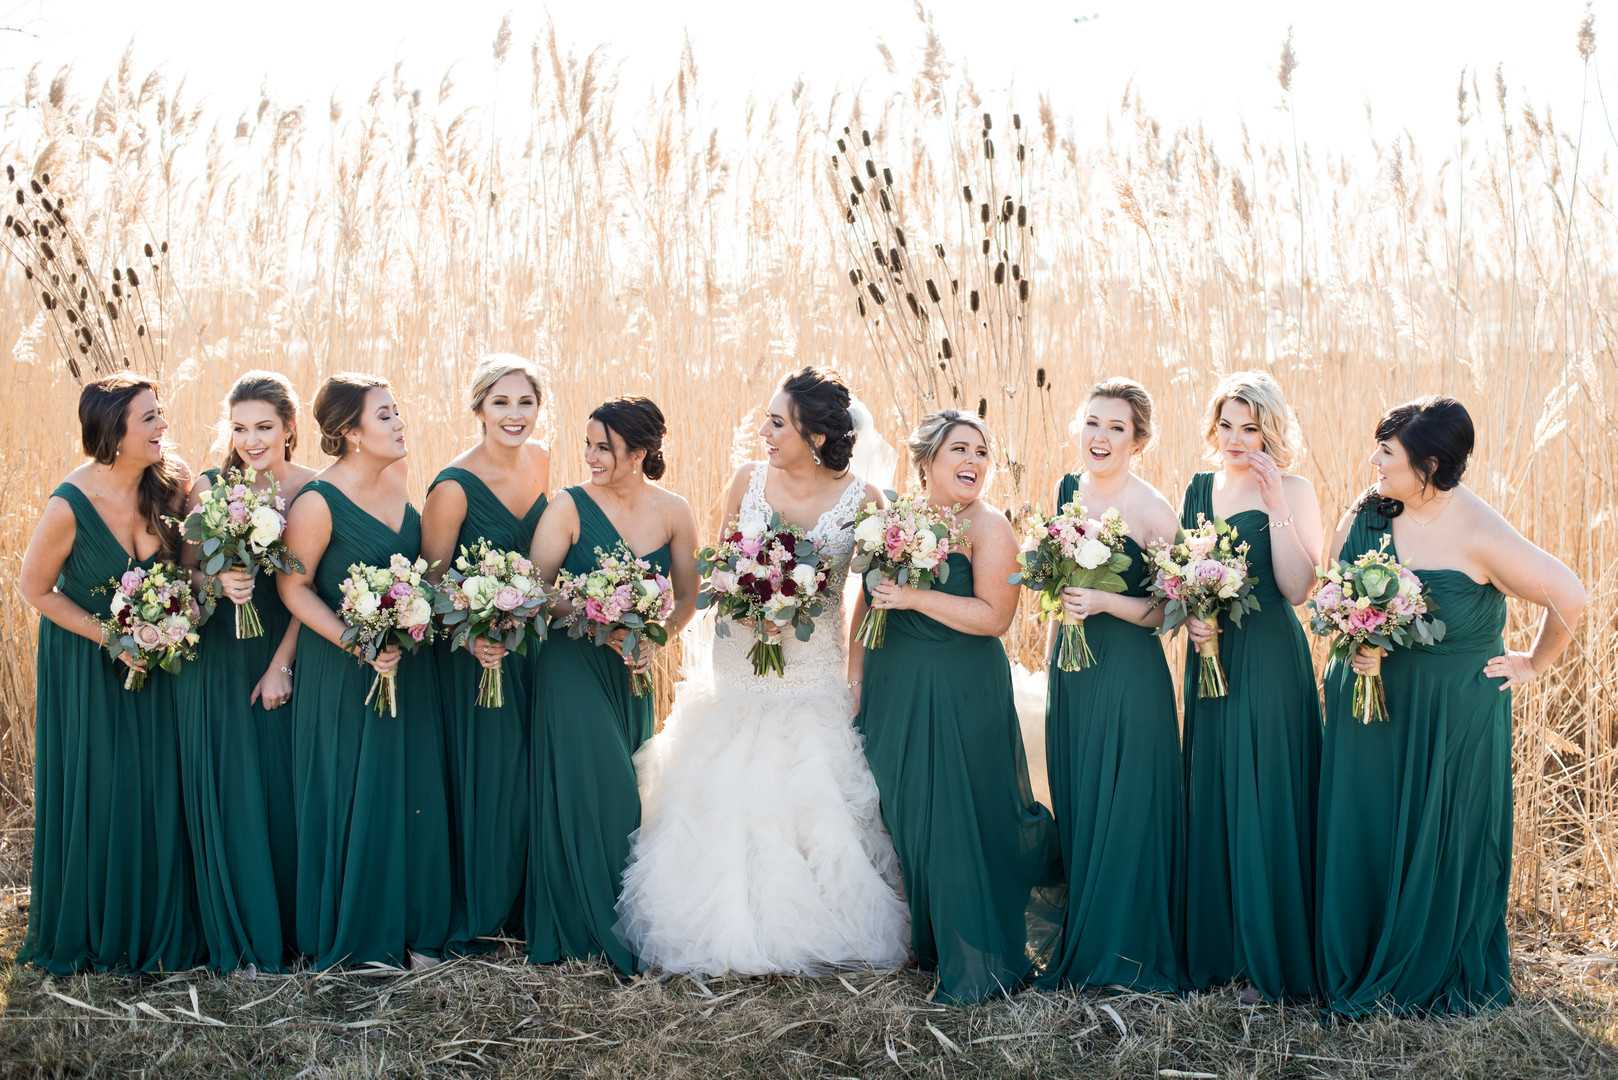 Bride and Bridesmaids | A Stunning St. Patrick's Day Wedding | Kate Aspen